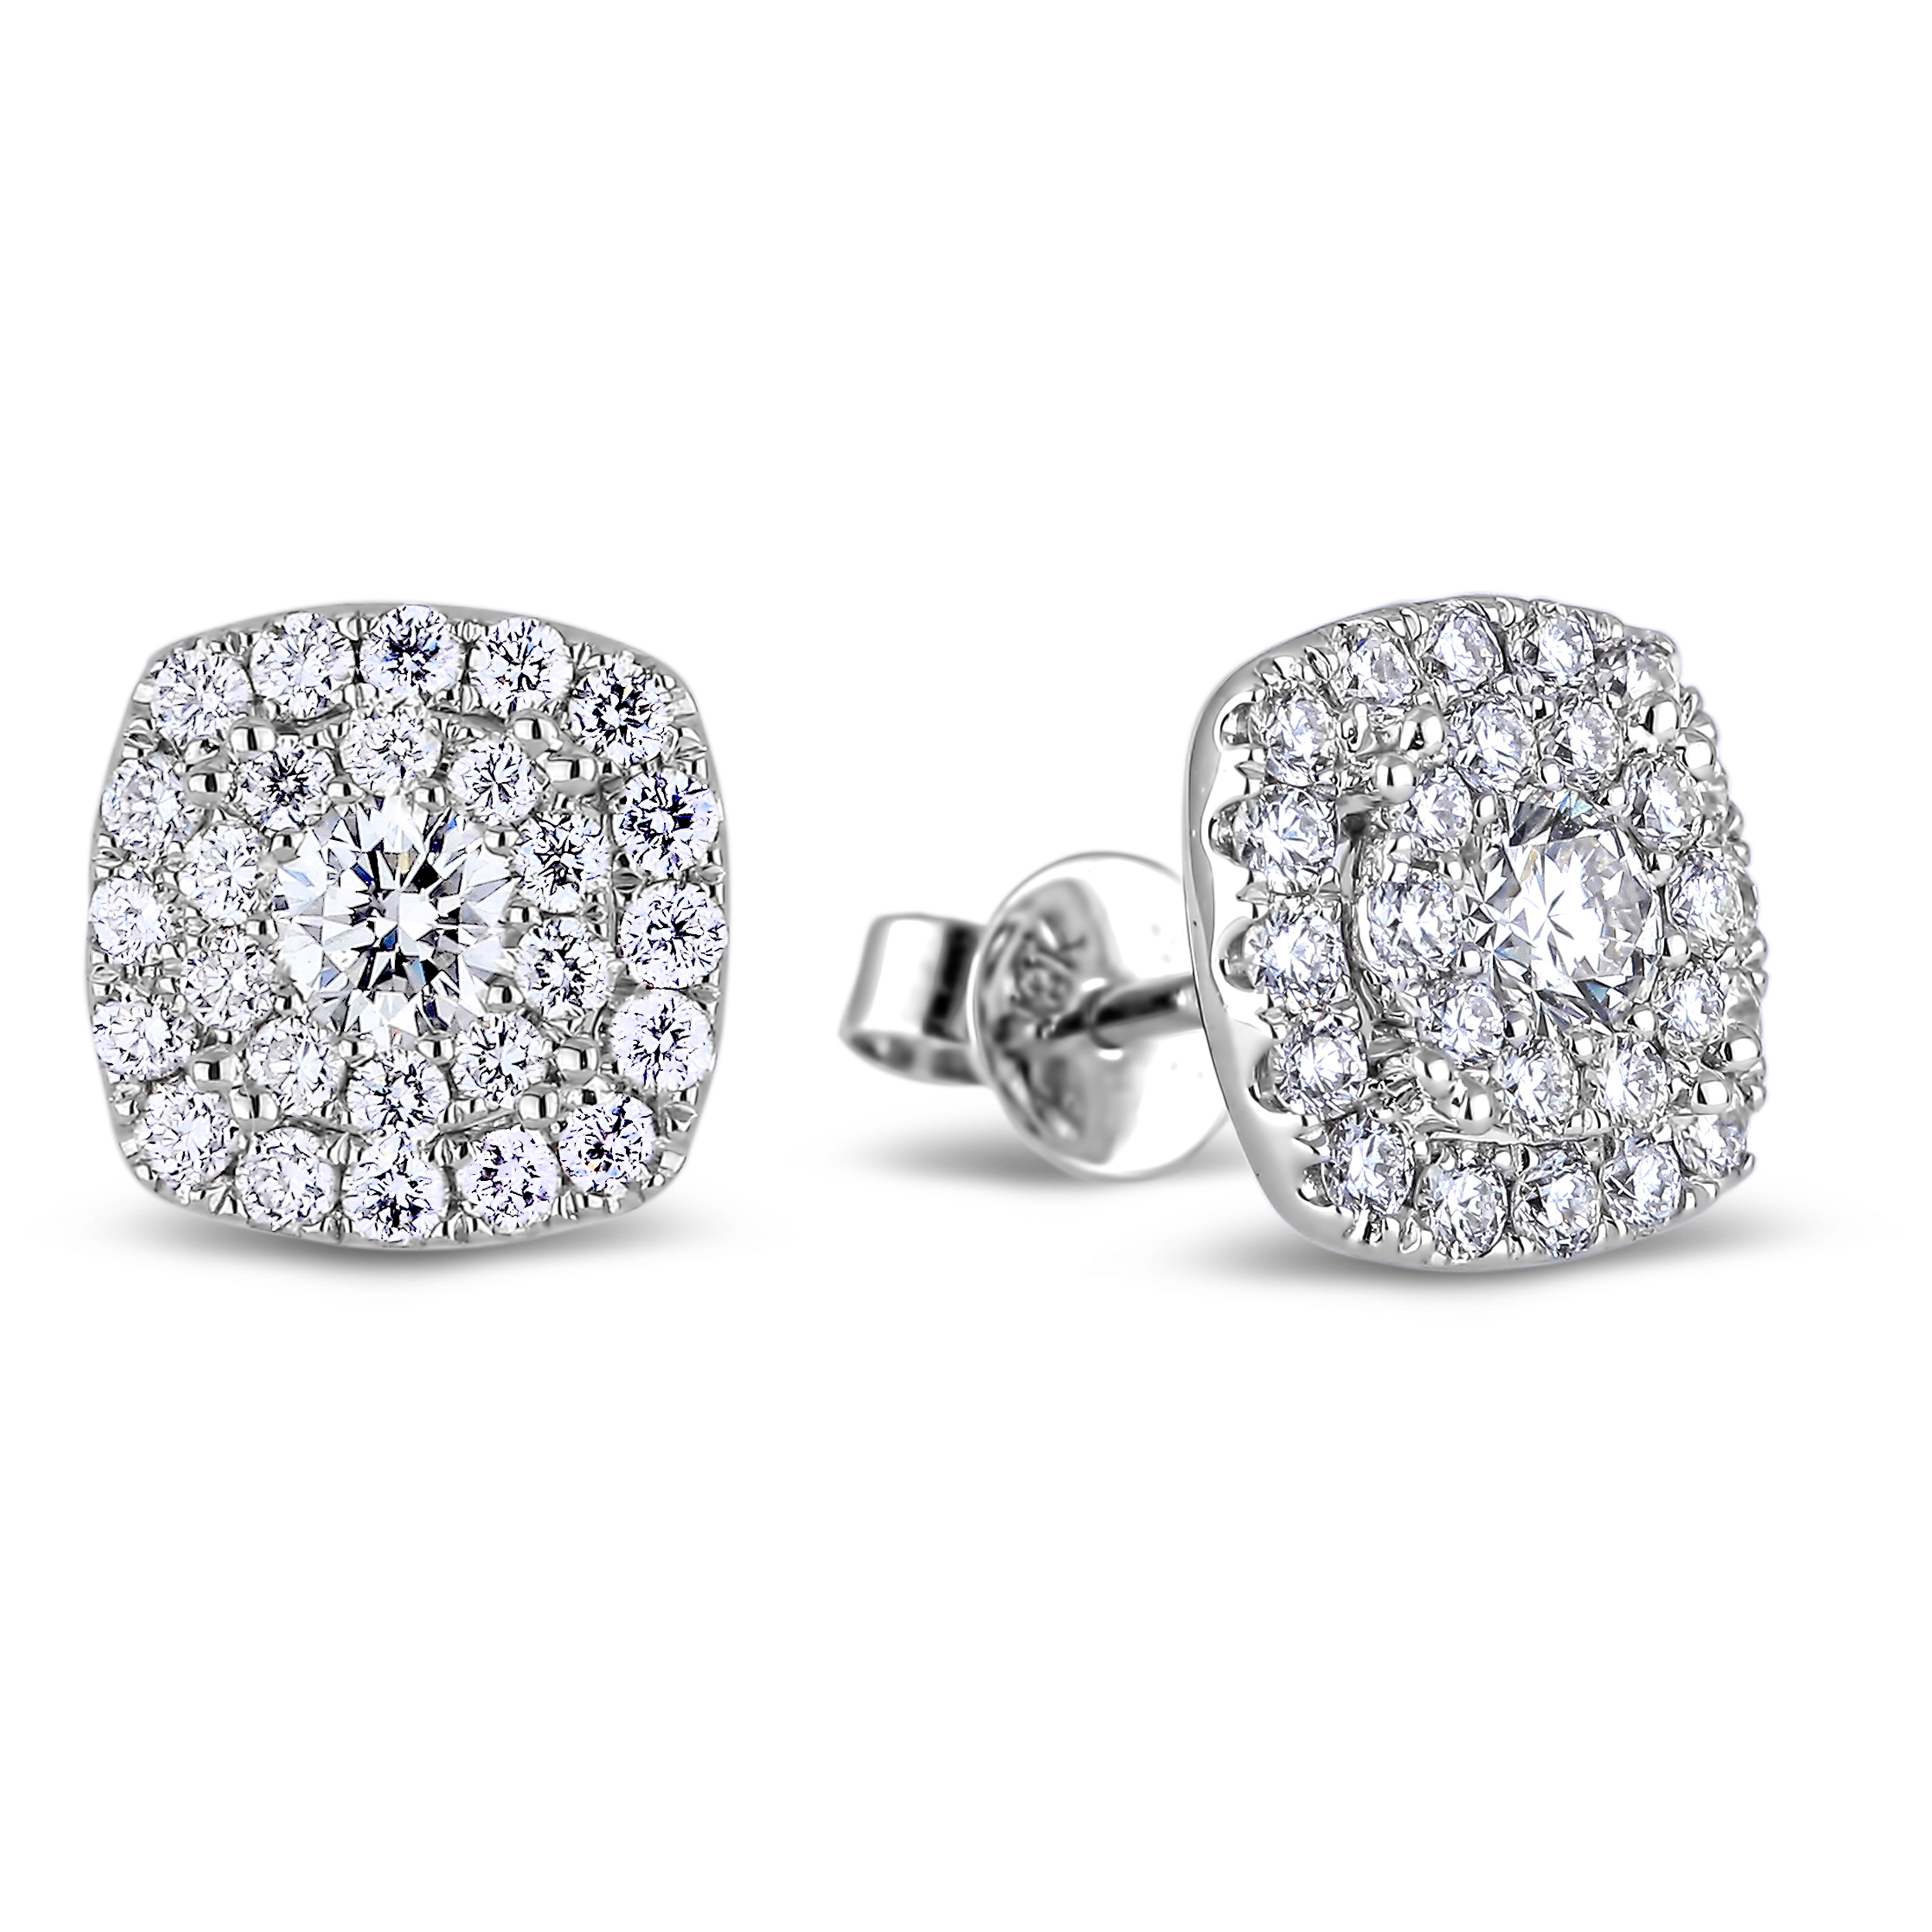 Diamond Stud Earrings SGE283 (Earrings)